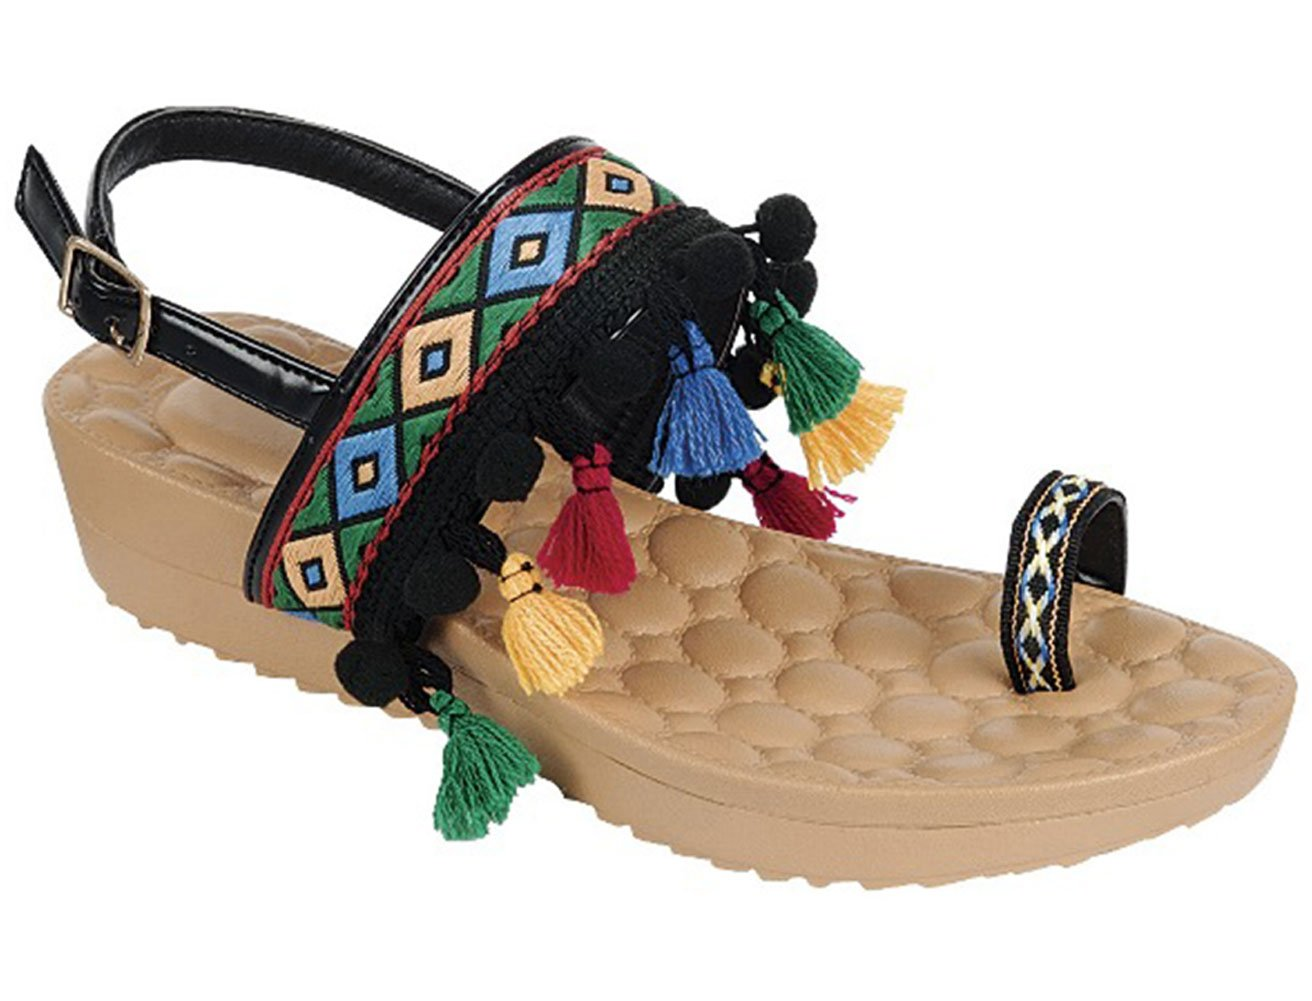 Top Black Wide Band Buckle Beaded Slingback Sandal Toe Ring Indian Ethnic Faux Leather Open Heel Comfy Walking Cushioned Colorful Flat Summer Basket Filler for Sale Women Teen Girl (Size 10, Black)